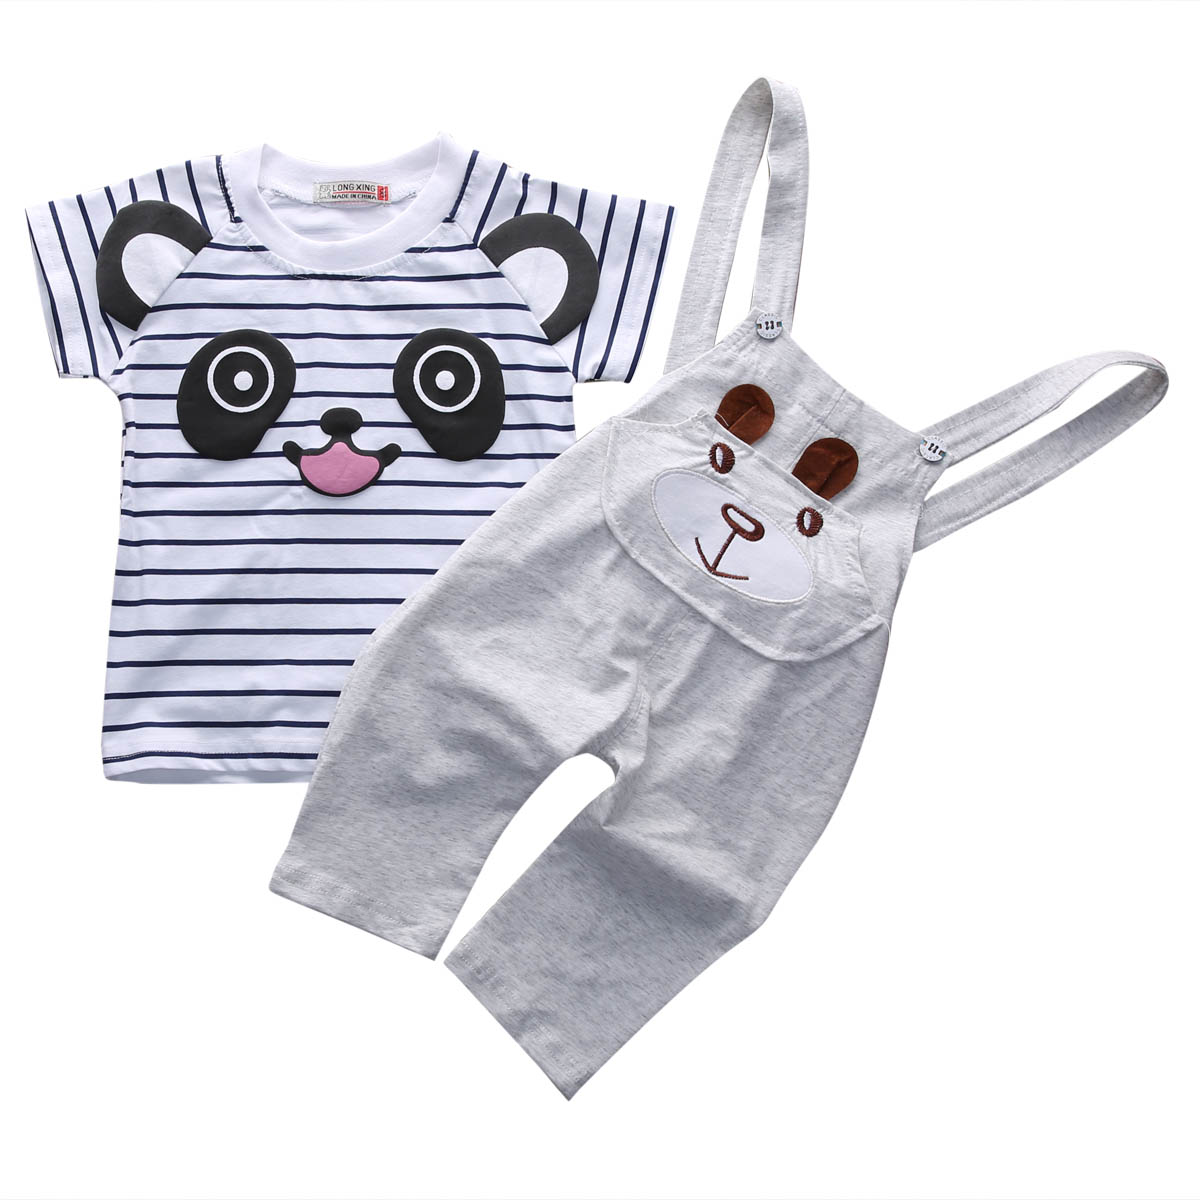 Cute 2PCS Newborn Kids Baby Boy Girls T-shirt Tops+Pants Overalls Outfits Clothes Set Summer Striped Tees Clothing 2pcs newborn baby boys clothes set gold letter mamas boy outfit t shirt pants kids autumn long sleeve tops baby boy clothes set